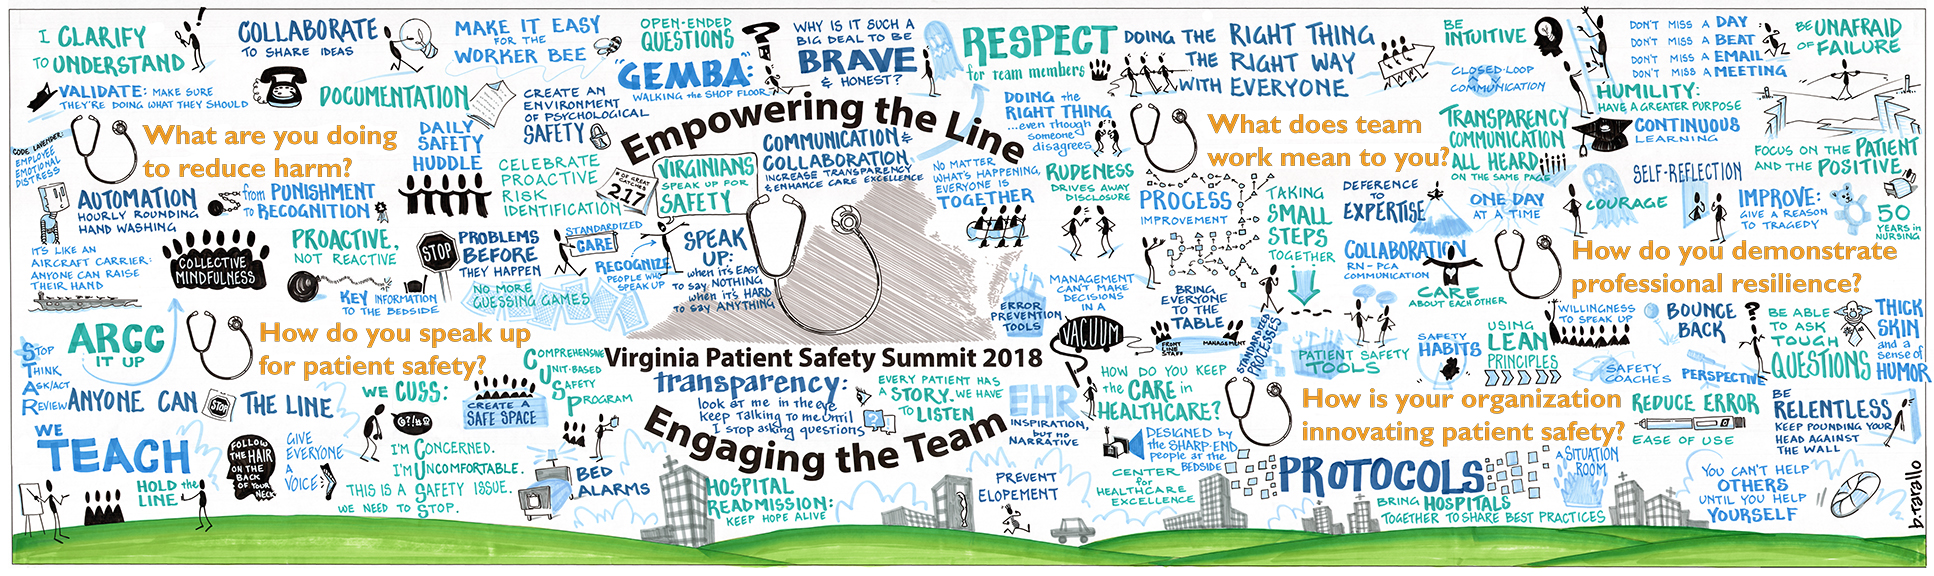 Knowledge Wall for the 2018 Virginia Patient Safety Summit.